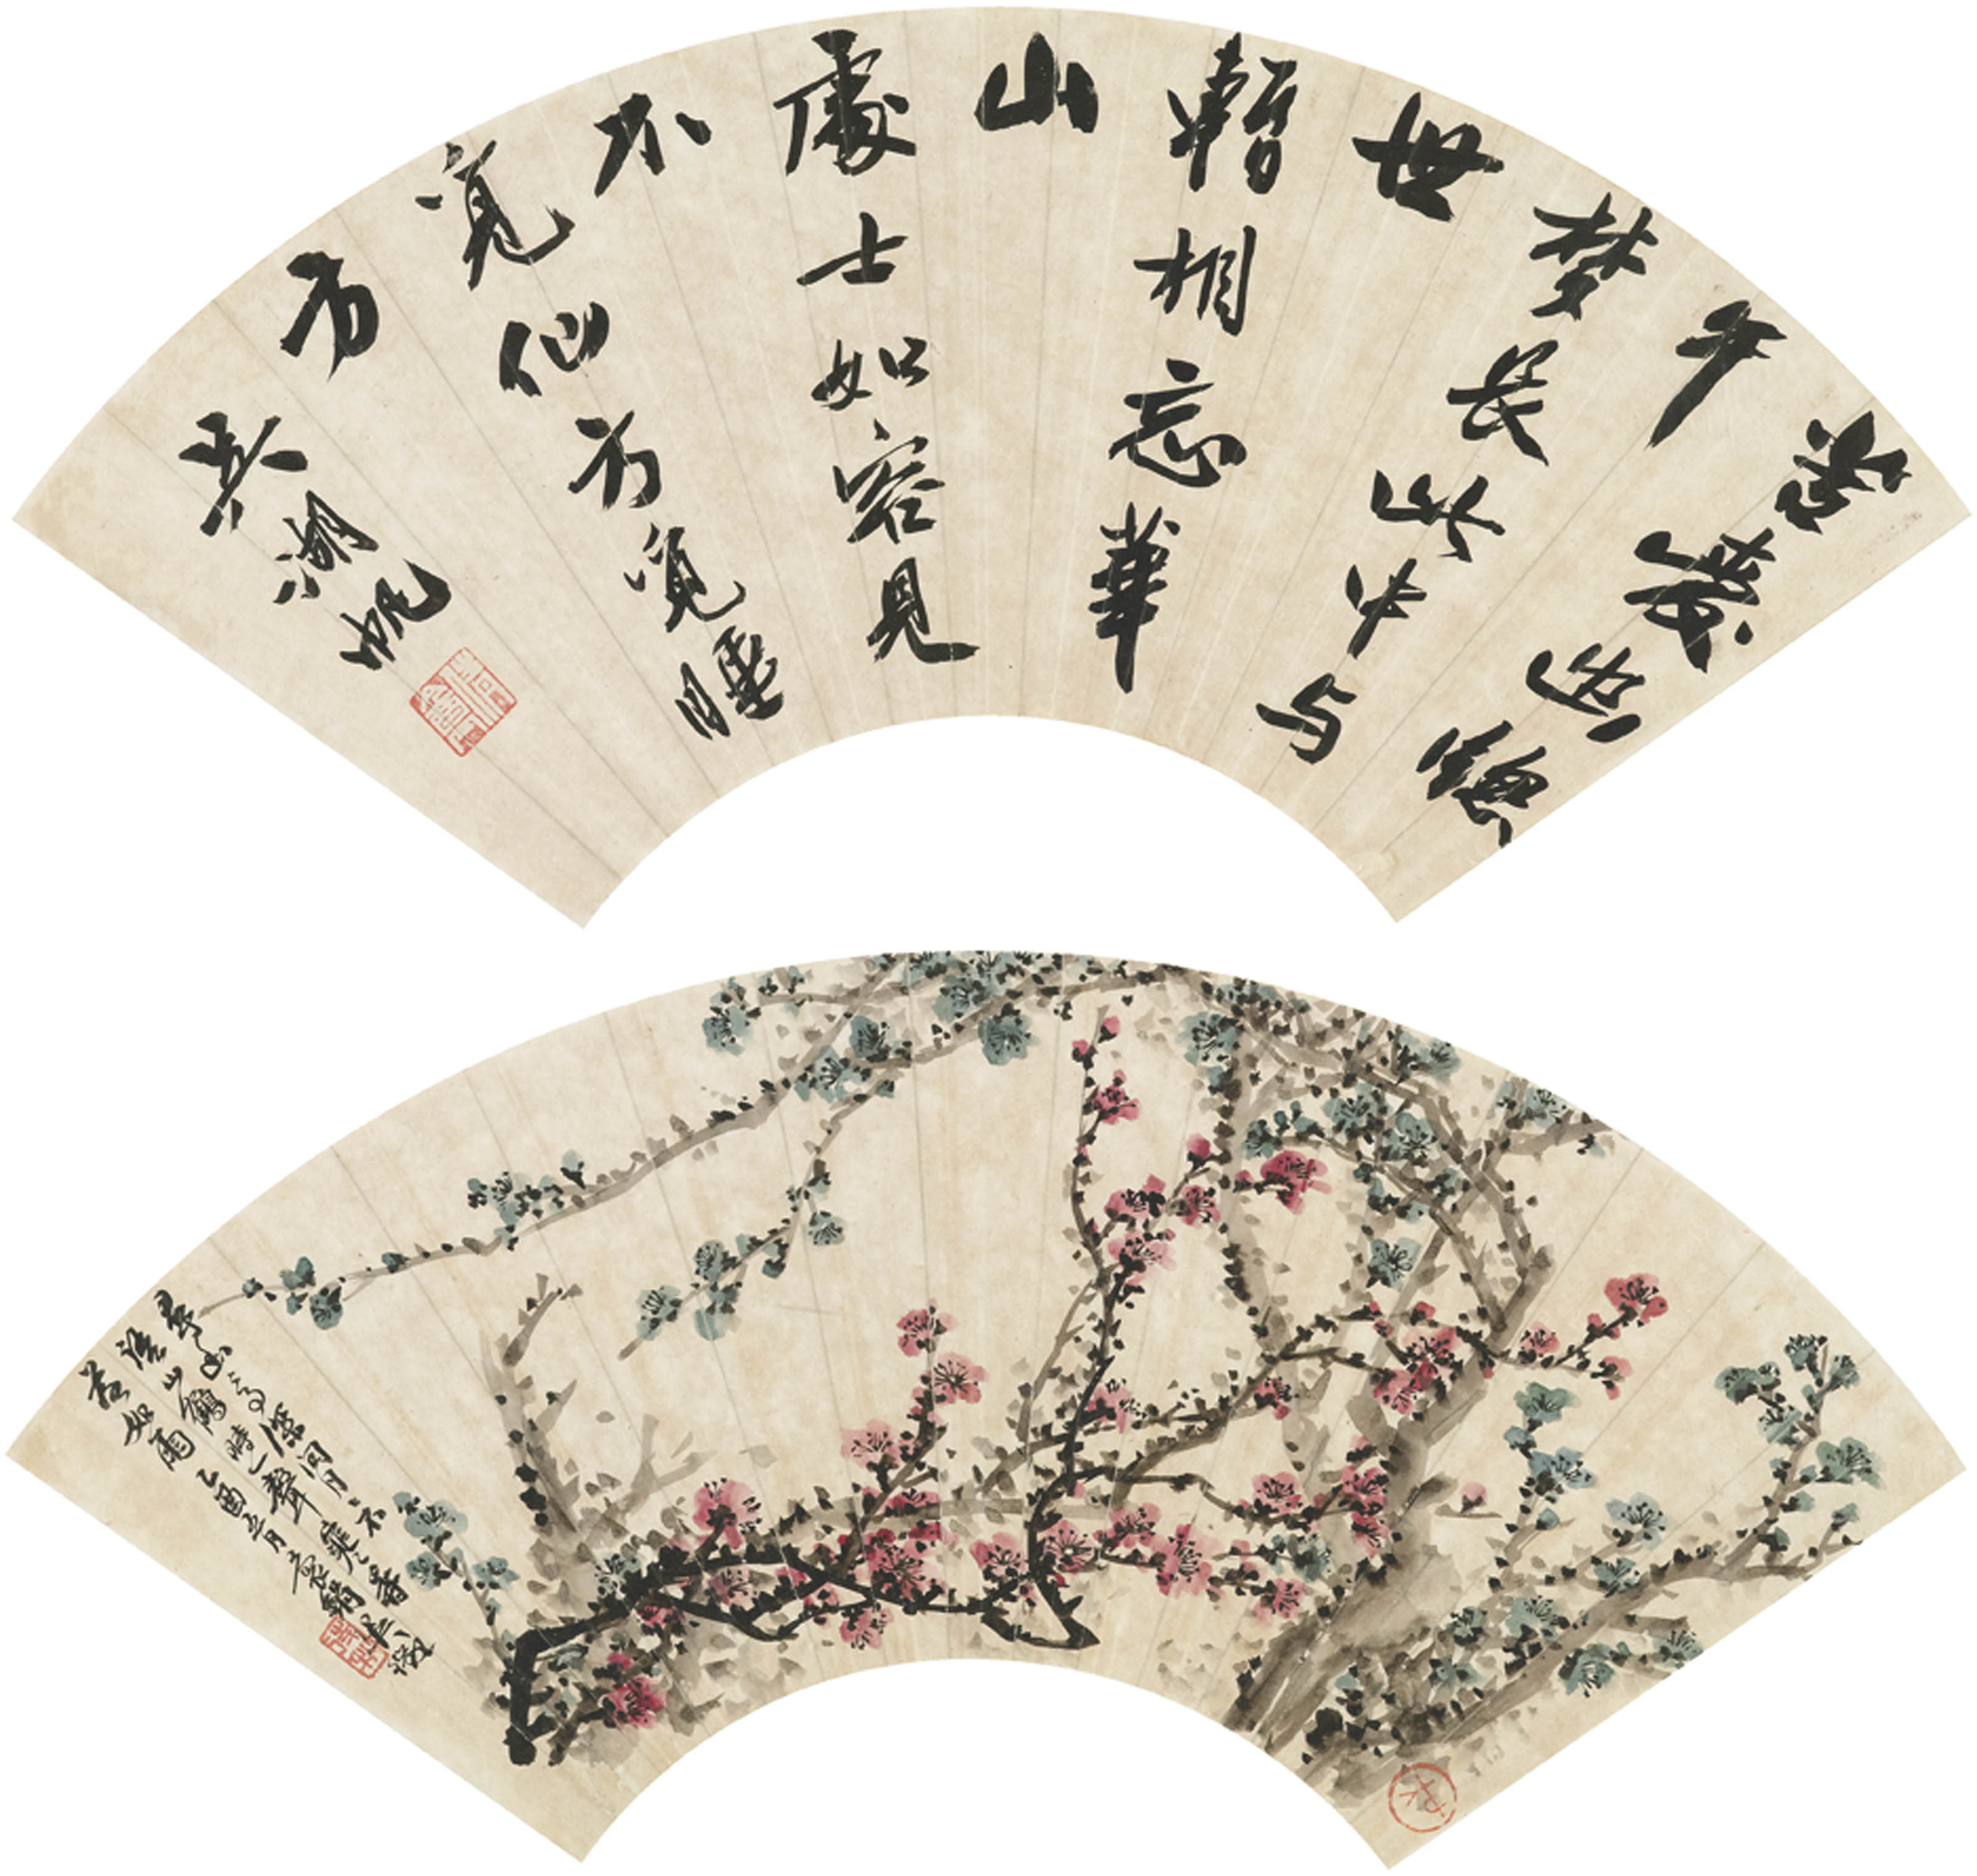 Calligraphy and Plum Blossoms